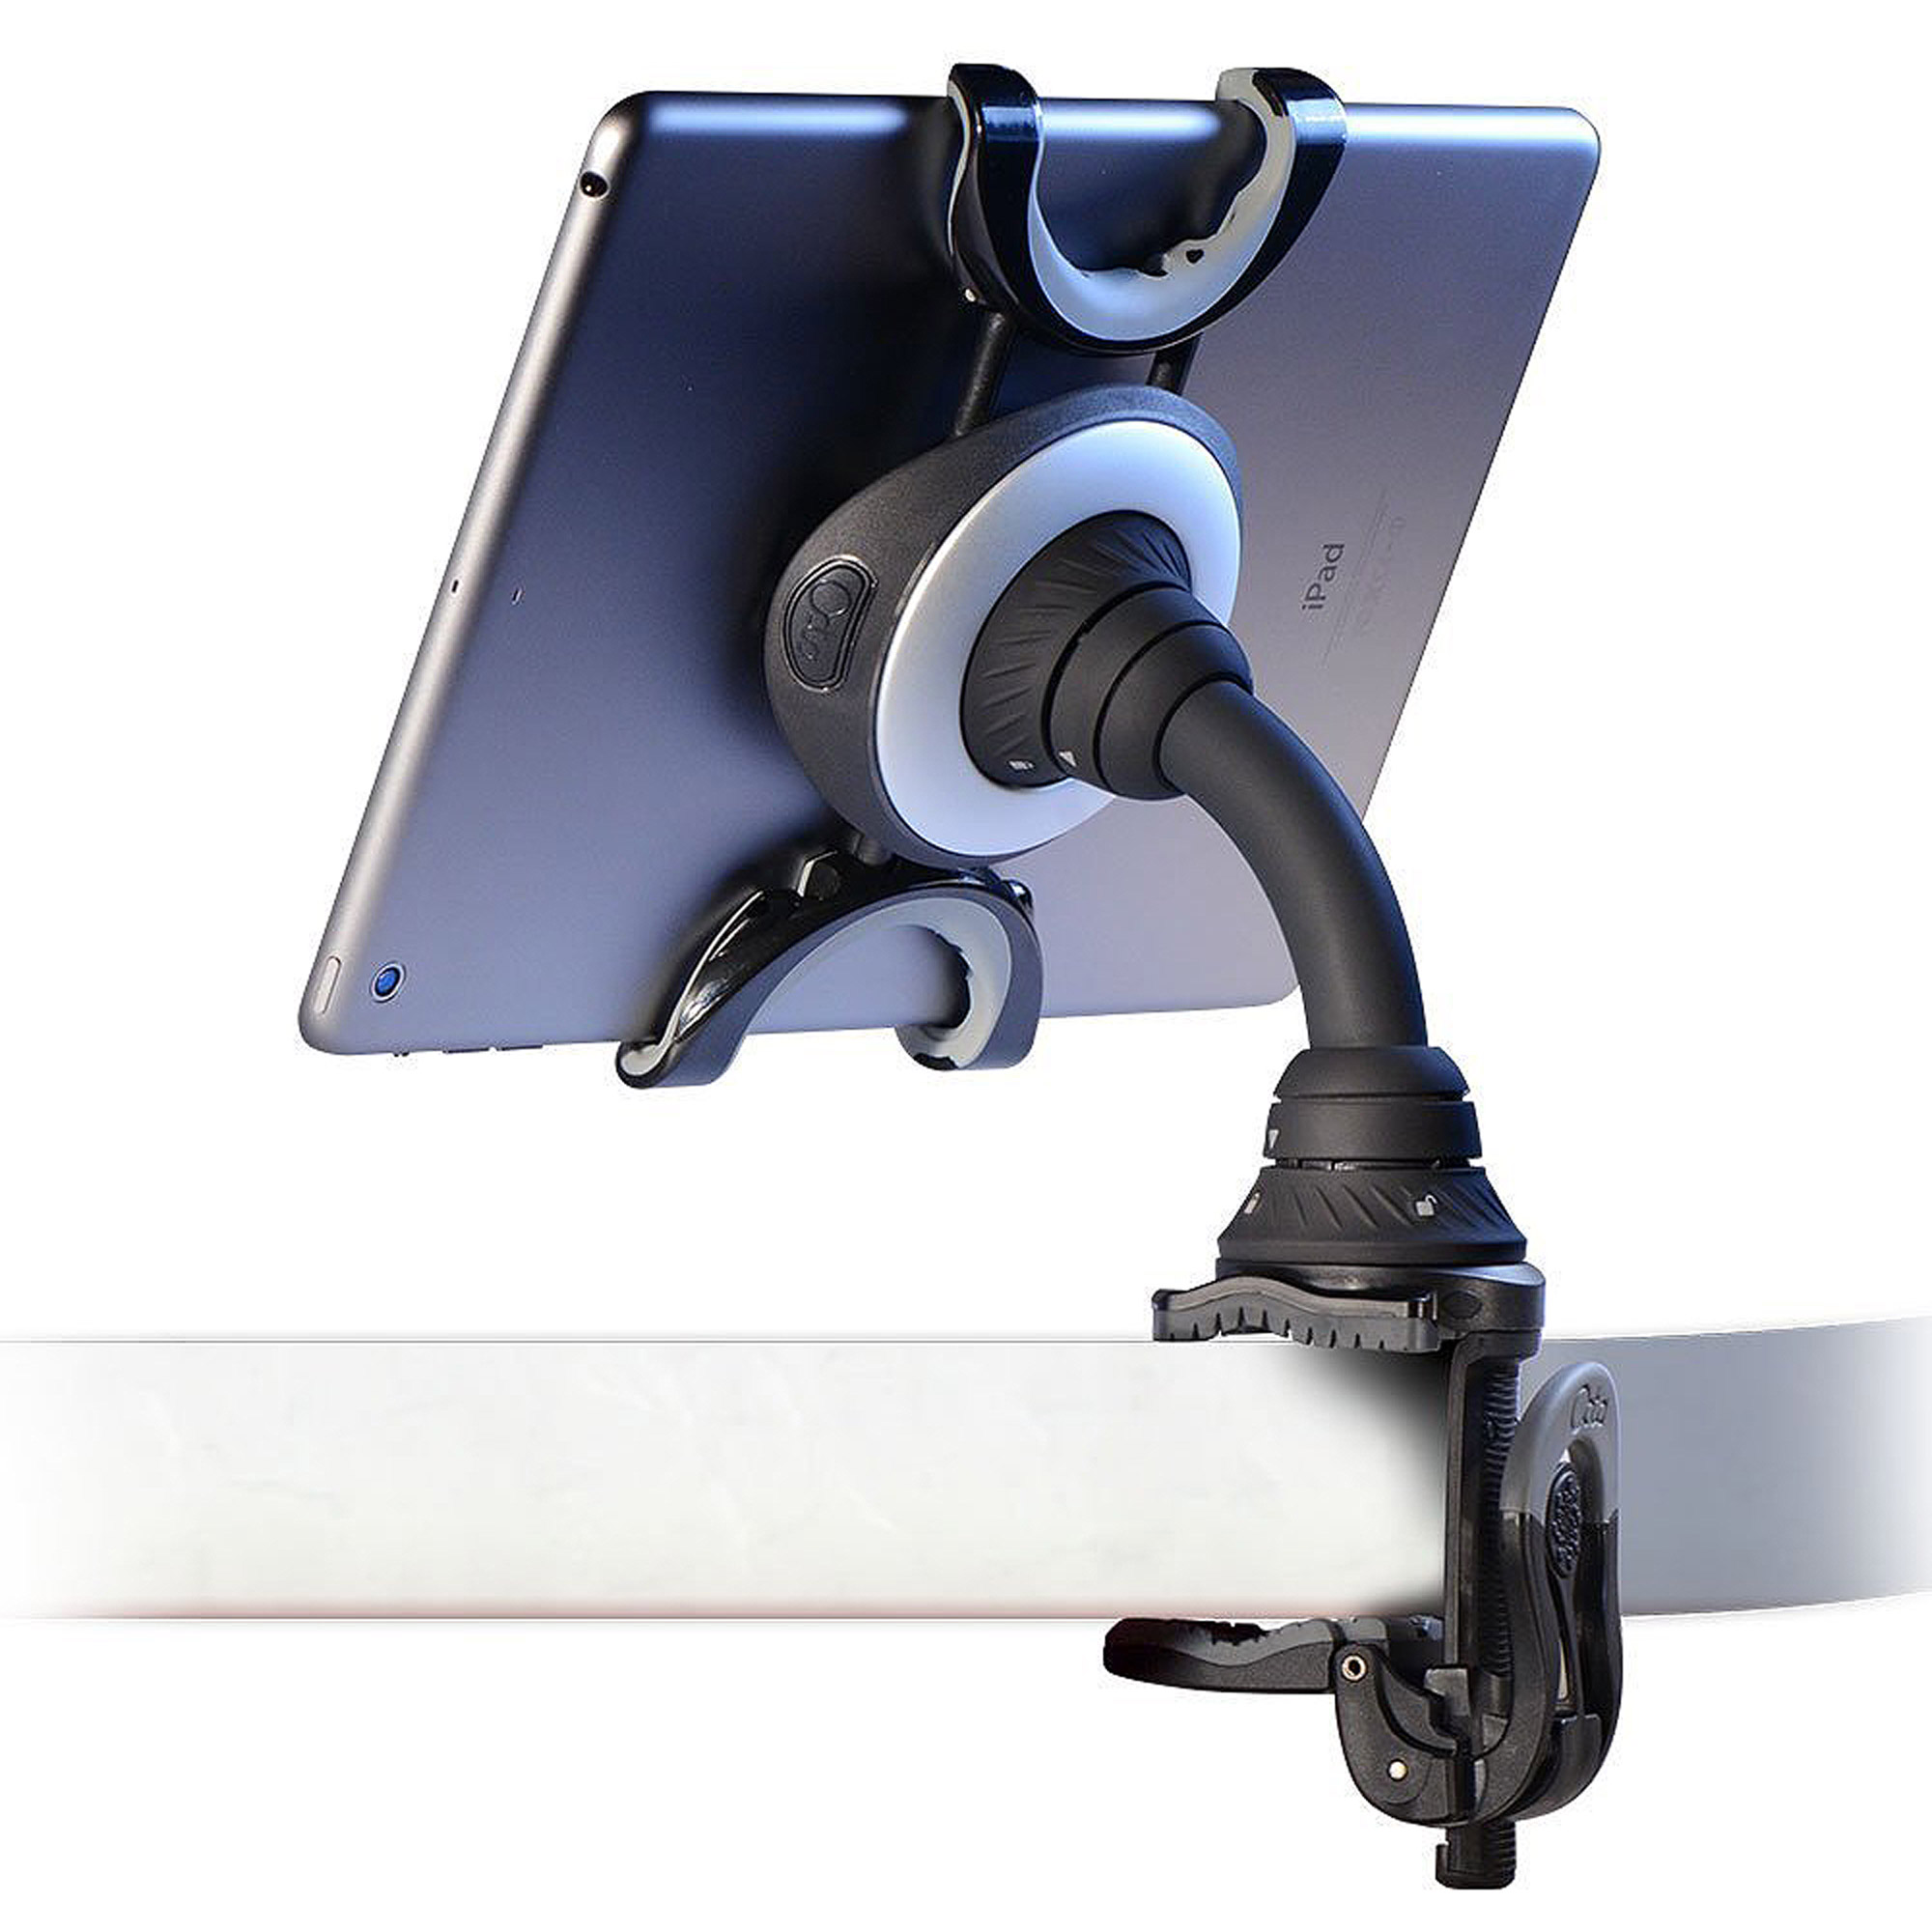 Octa TabletTail: Lynx  Flexible Mount & Stand for iPad/Tablet